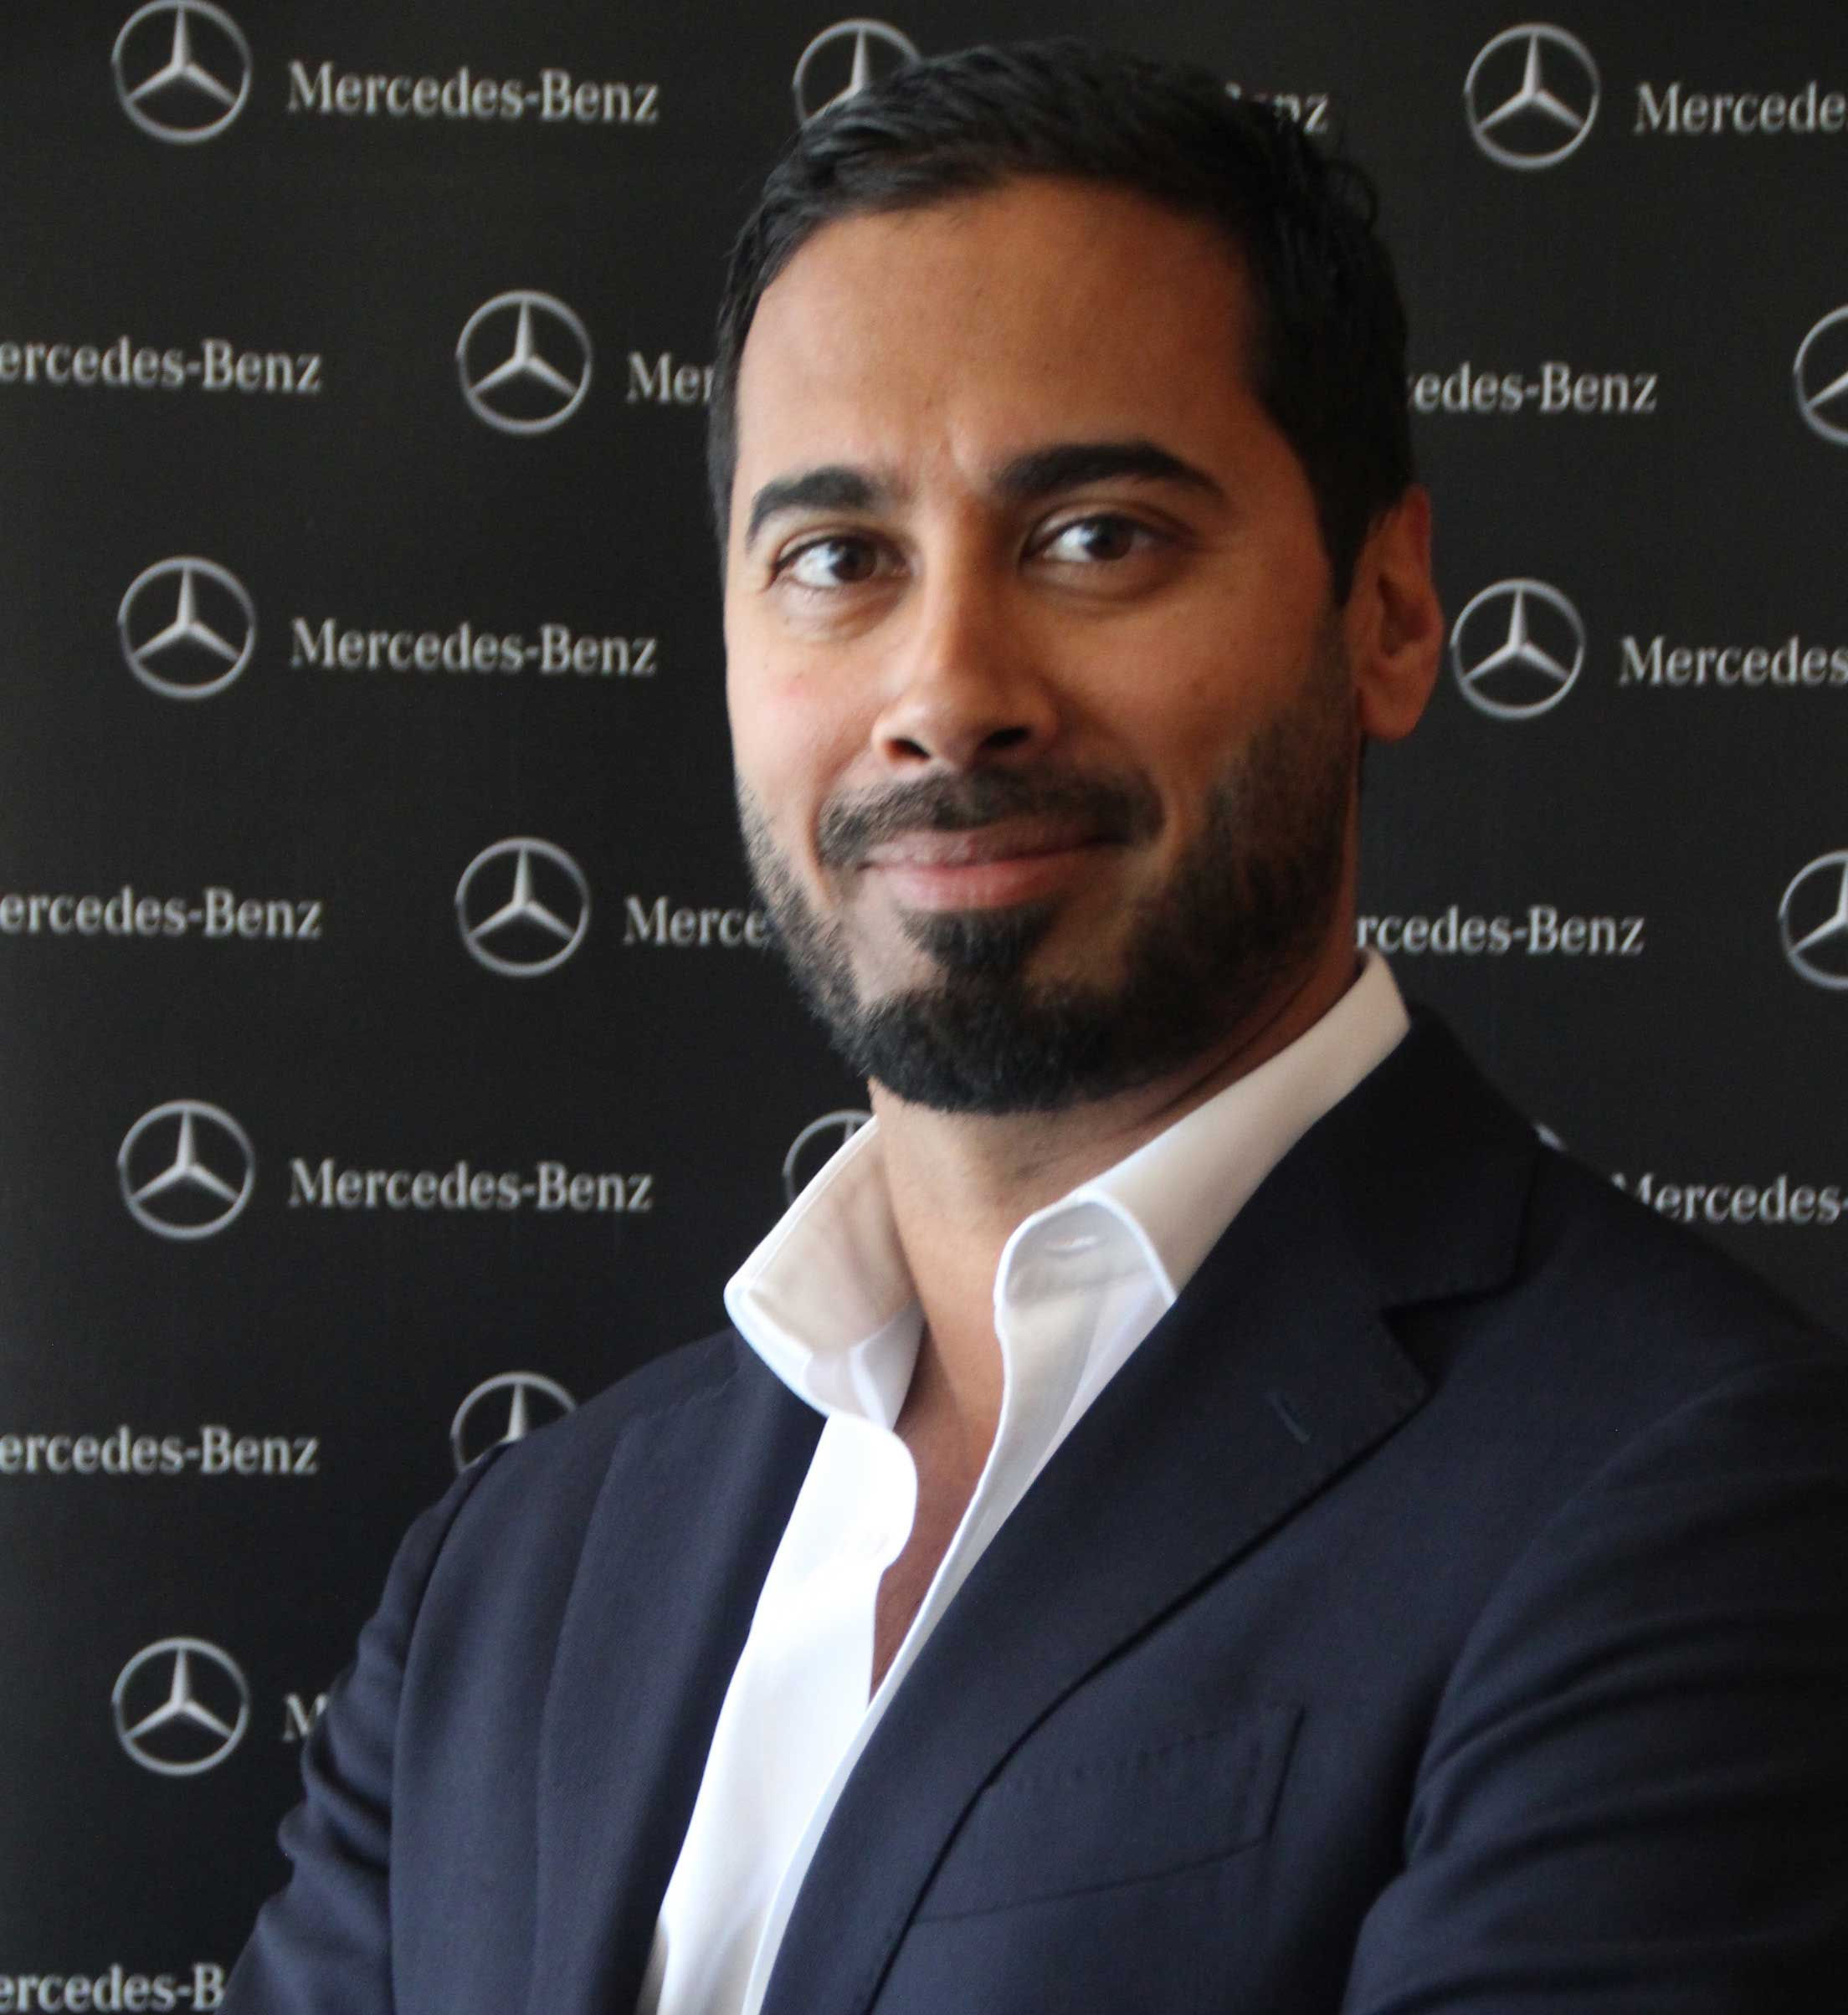 Mercedes-Benz Cars Middle East Appoints Krishan Bodhani as Director of Sales and Marketing